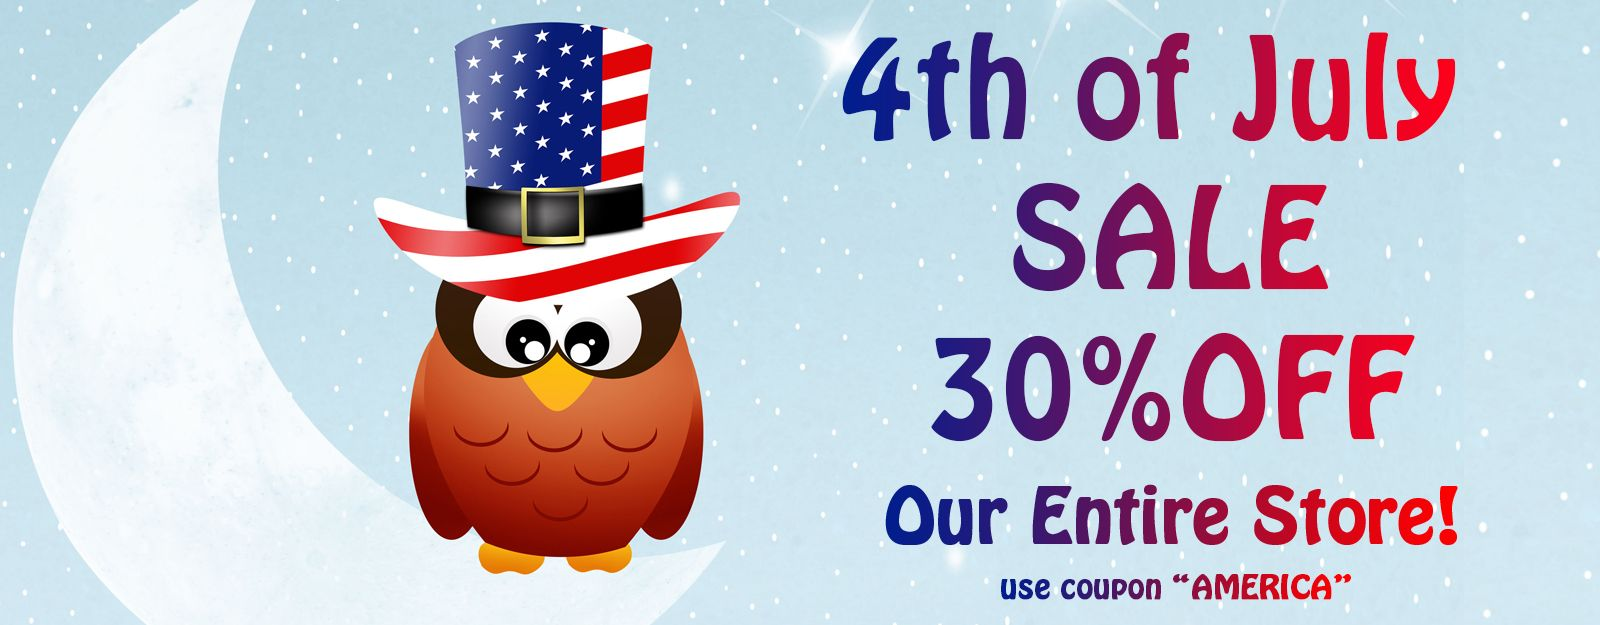 """4th of July SALE 30% off ENTIRE store! Use coupon """"AMERICA"""""""